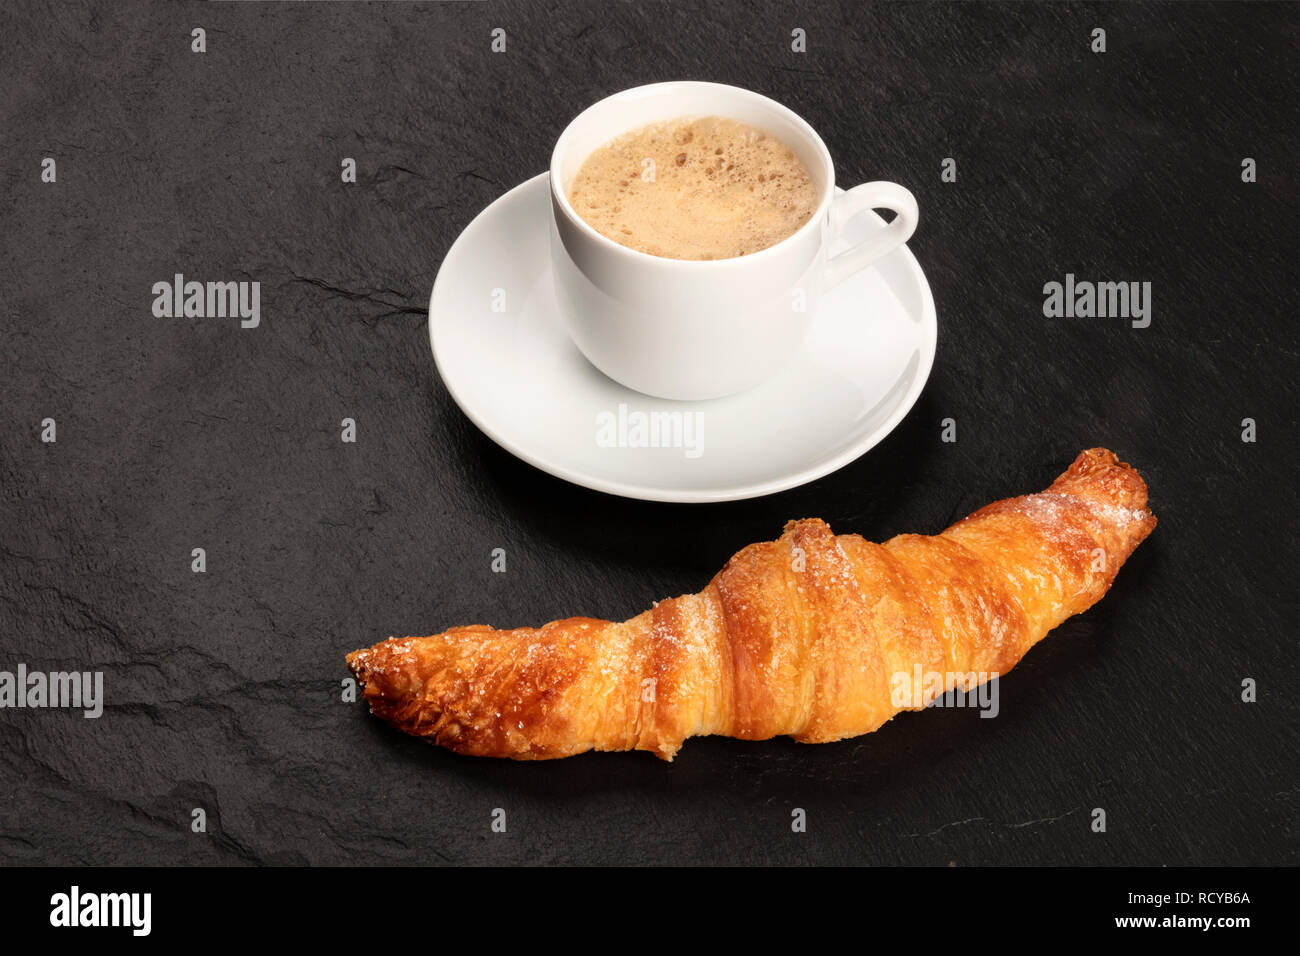 A photo of a croissant with a cup of coffee on a black background with copy space - Stock Image